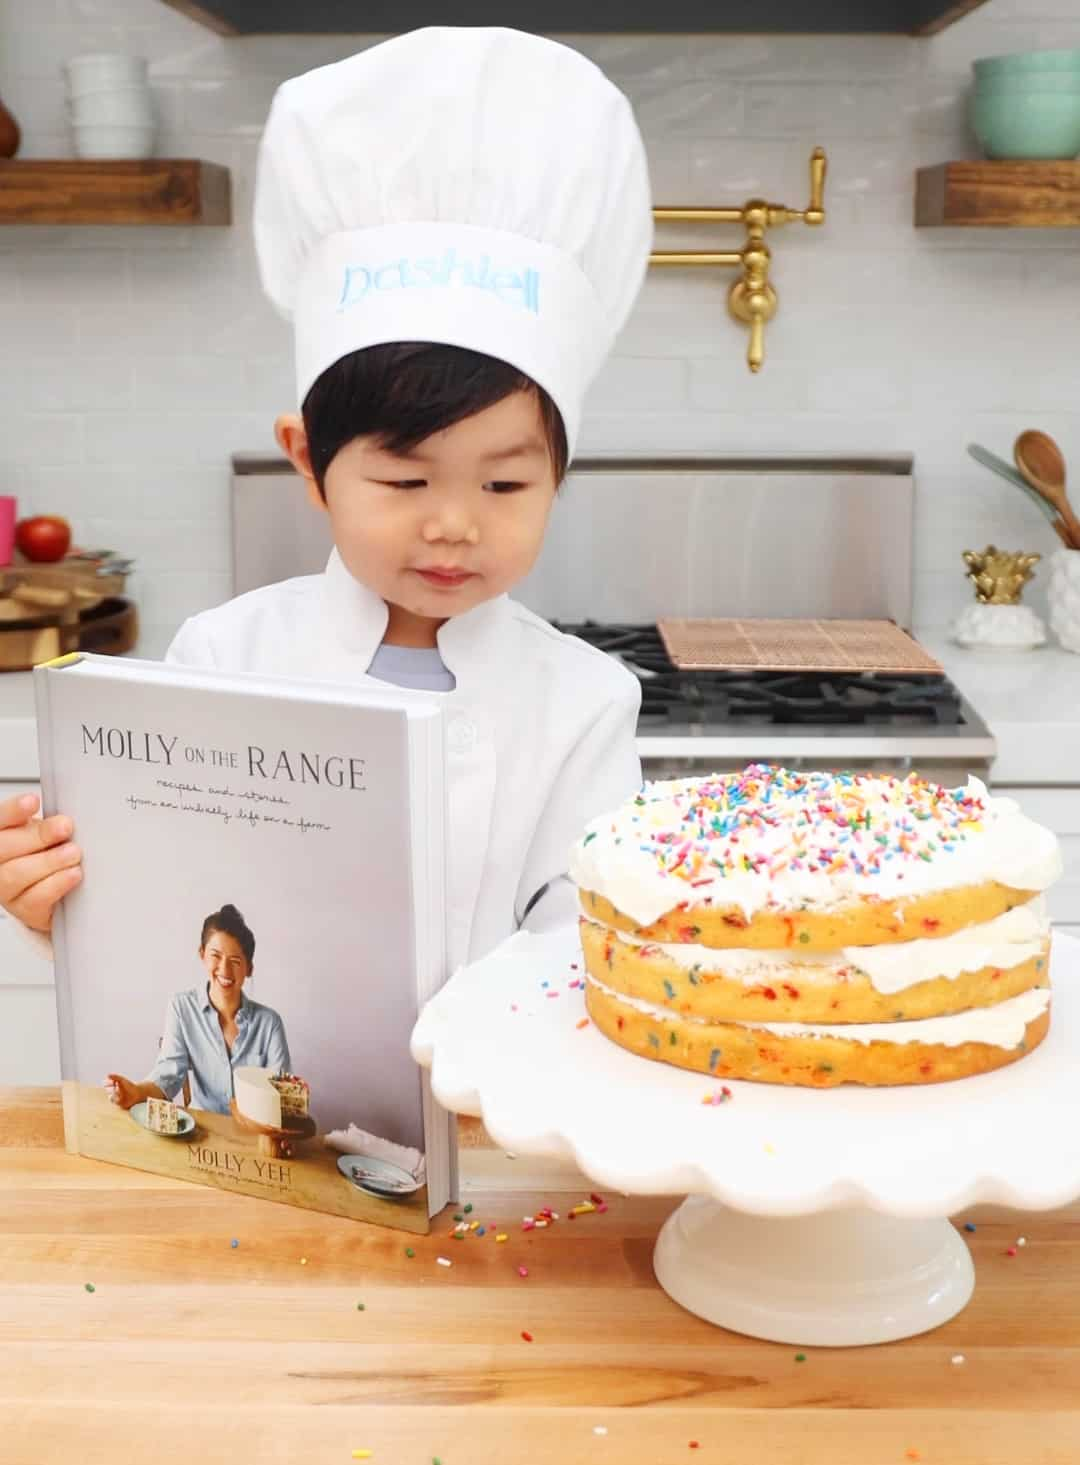 Dash Bakes The Greats: Molly Yeh's Sprinkles Cake